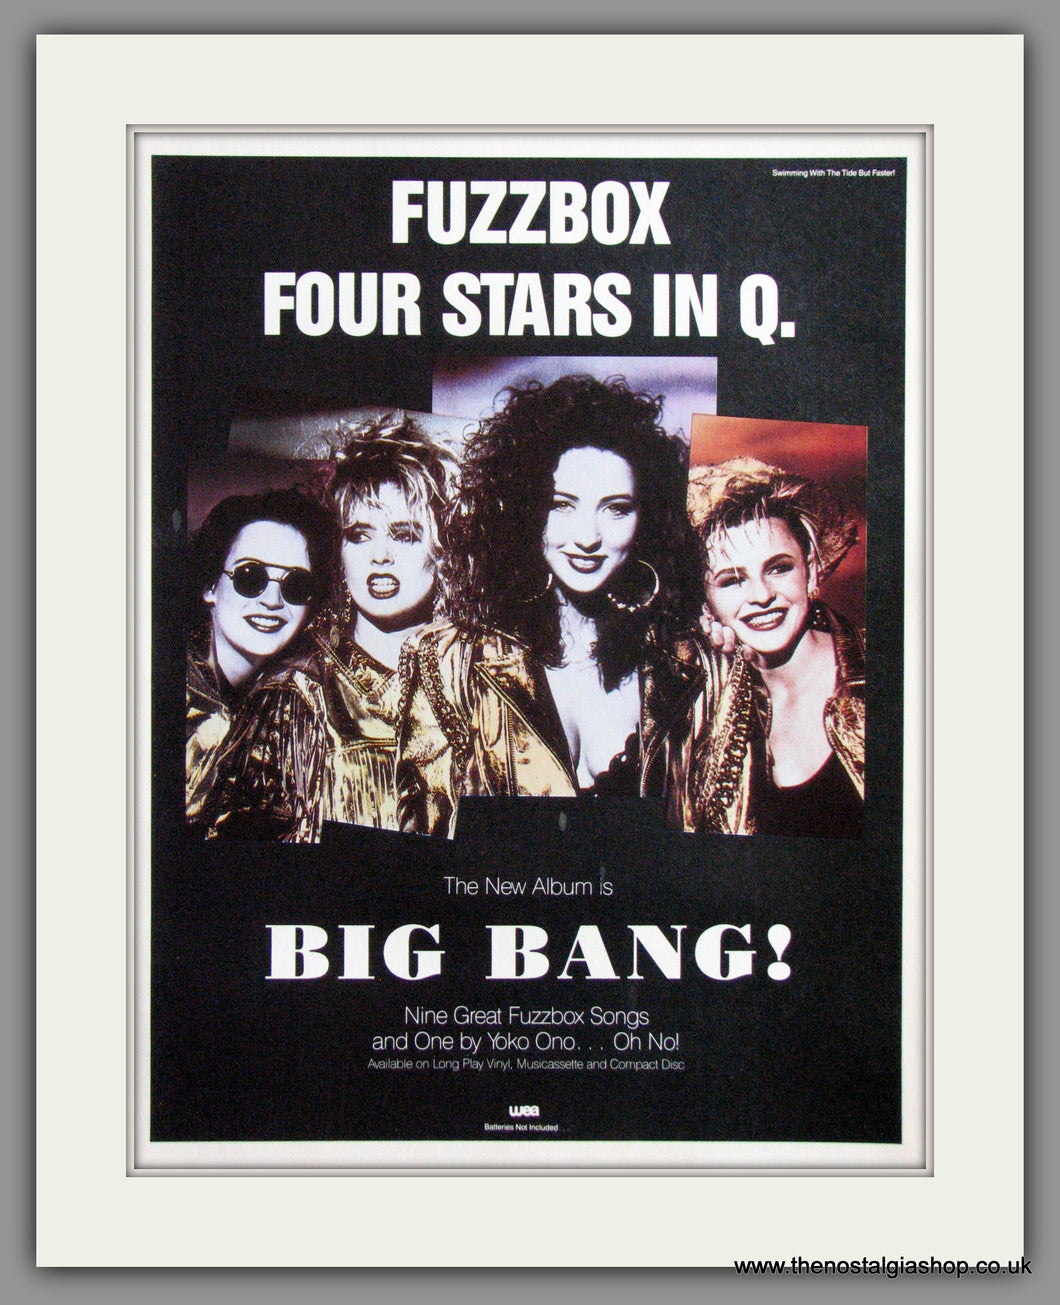 Fuzzbox Four Stars In Q - Big Bang. Vintage Advert 1989 (ref AD50451)